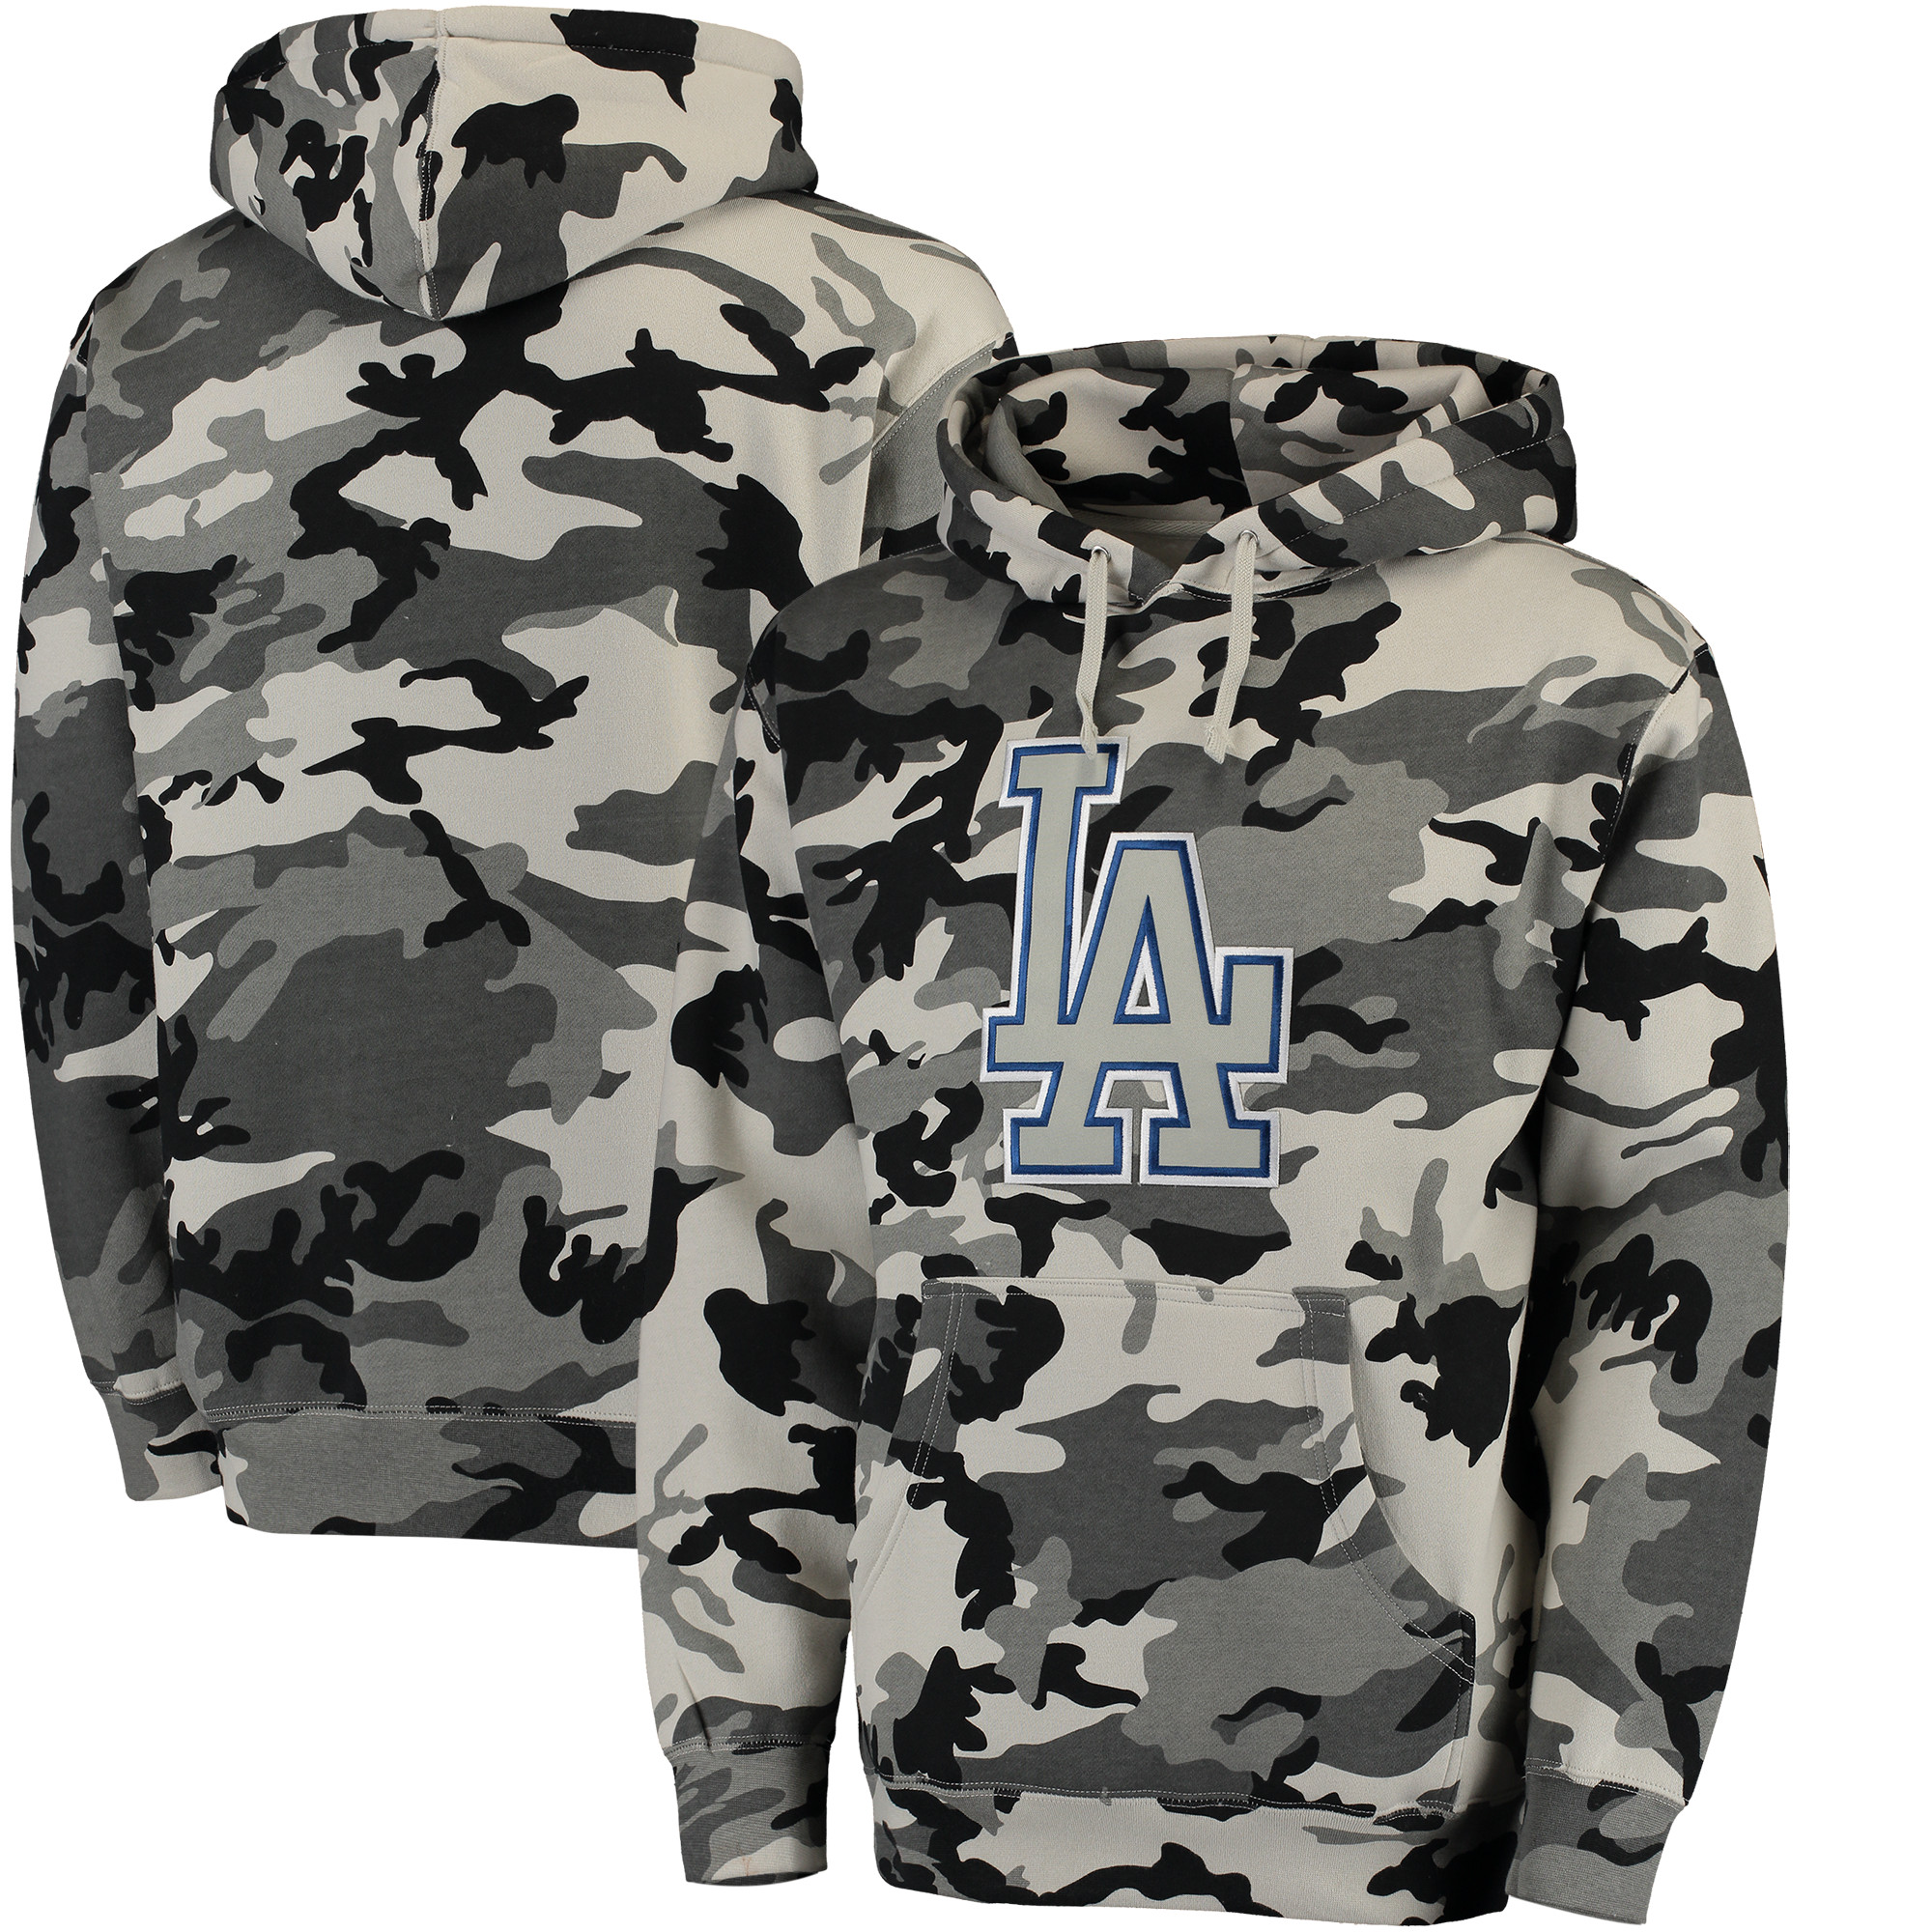 Los Angeles Dodgers Stitches Pullover Hoodie - Black/Camo